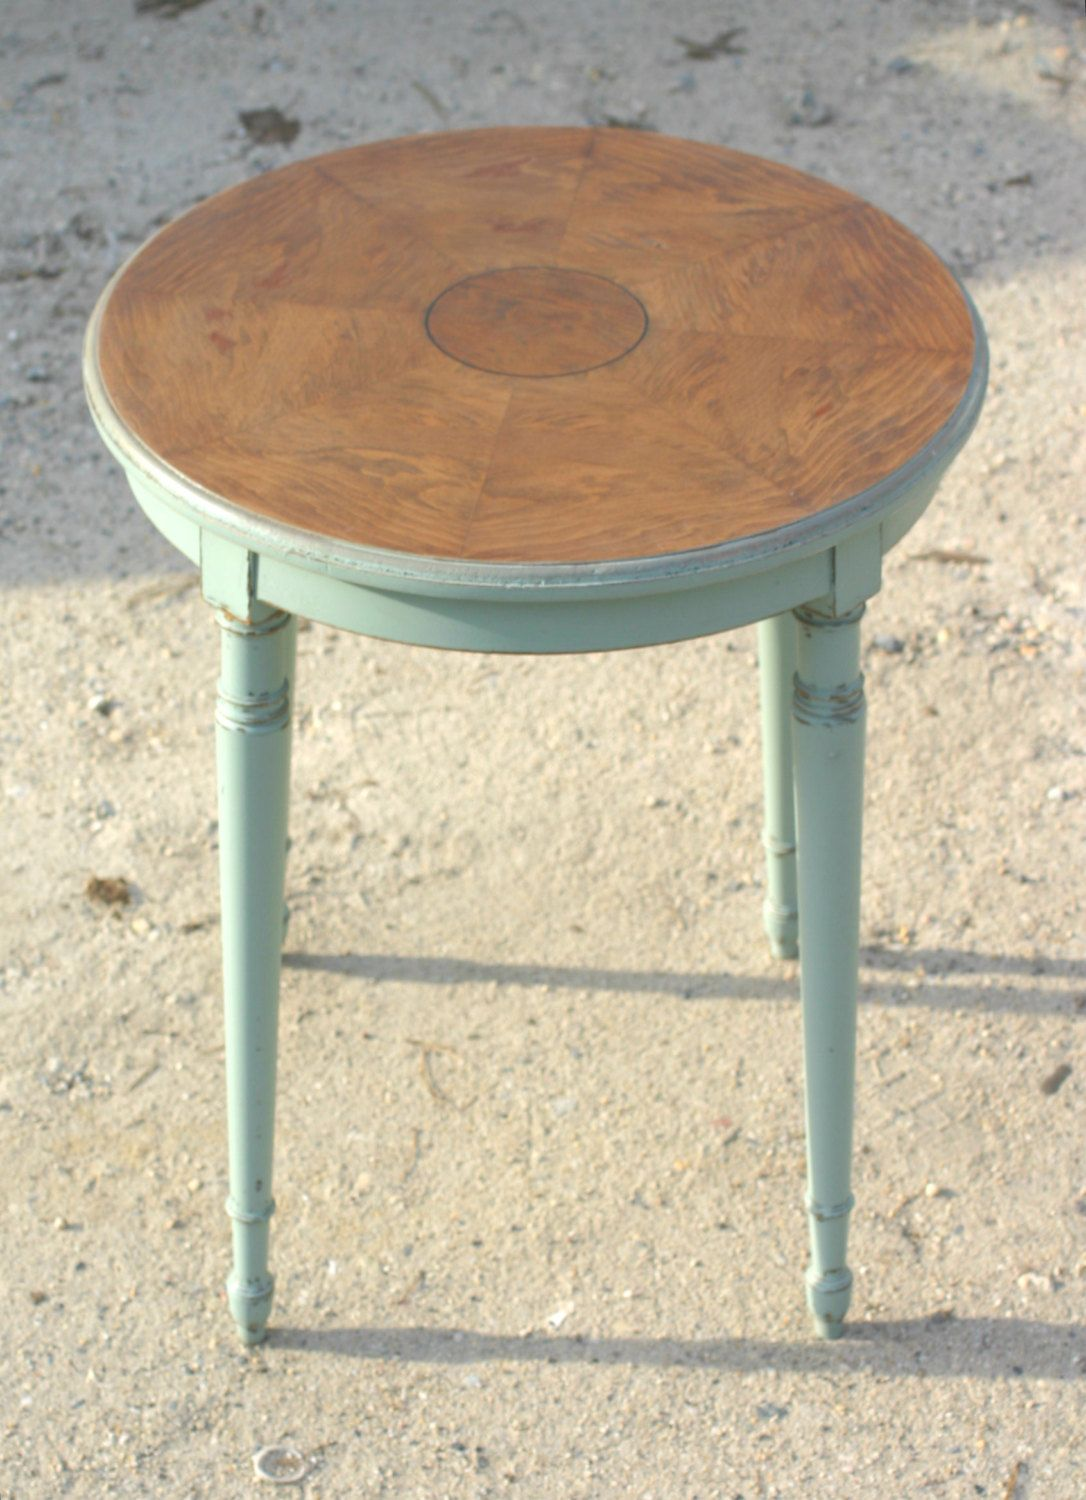 round accent table blue inlaid wood distressed small side end tables sweetiesattic etsy silver drum white dining and chairs metal antique storage boxes concrete top gray black